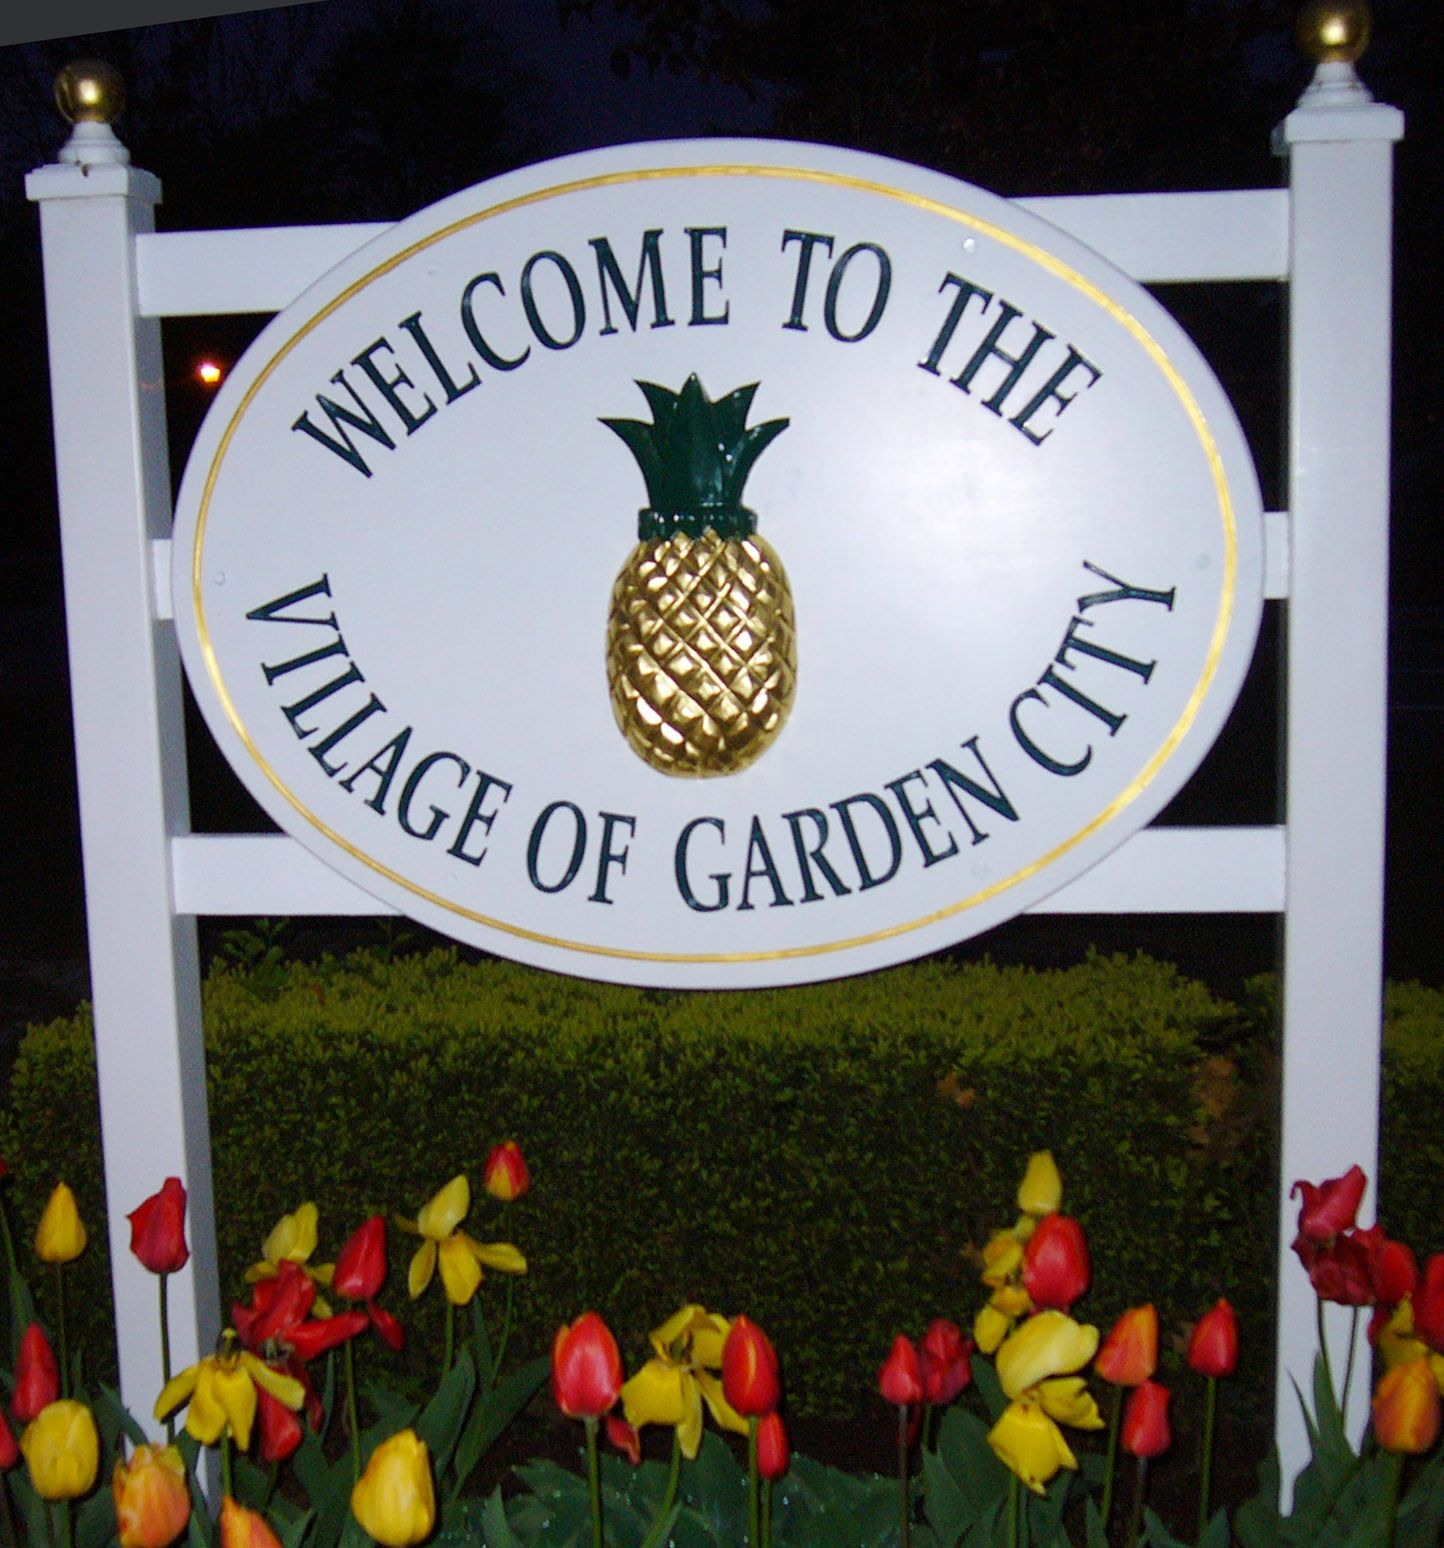 The Village Of Garden City In Nassau County Long Island S Town Of